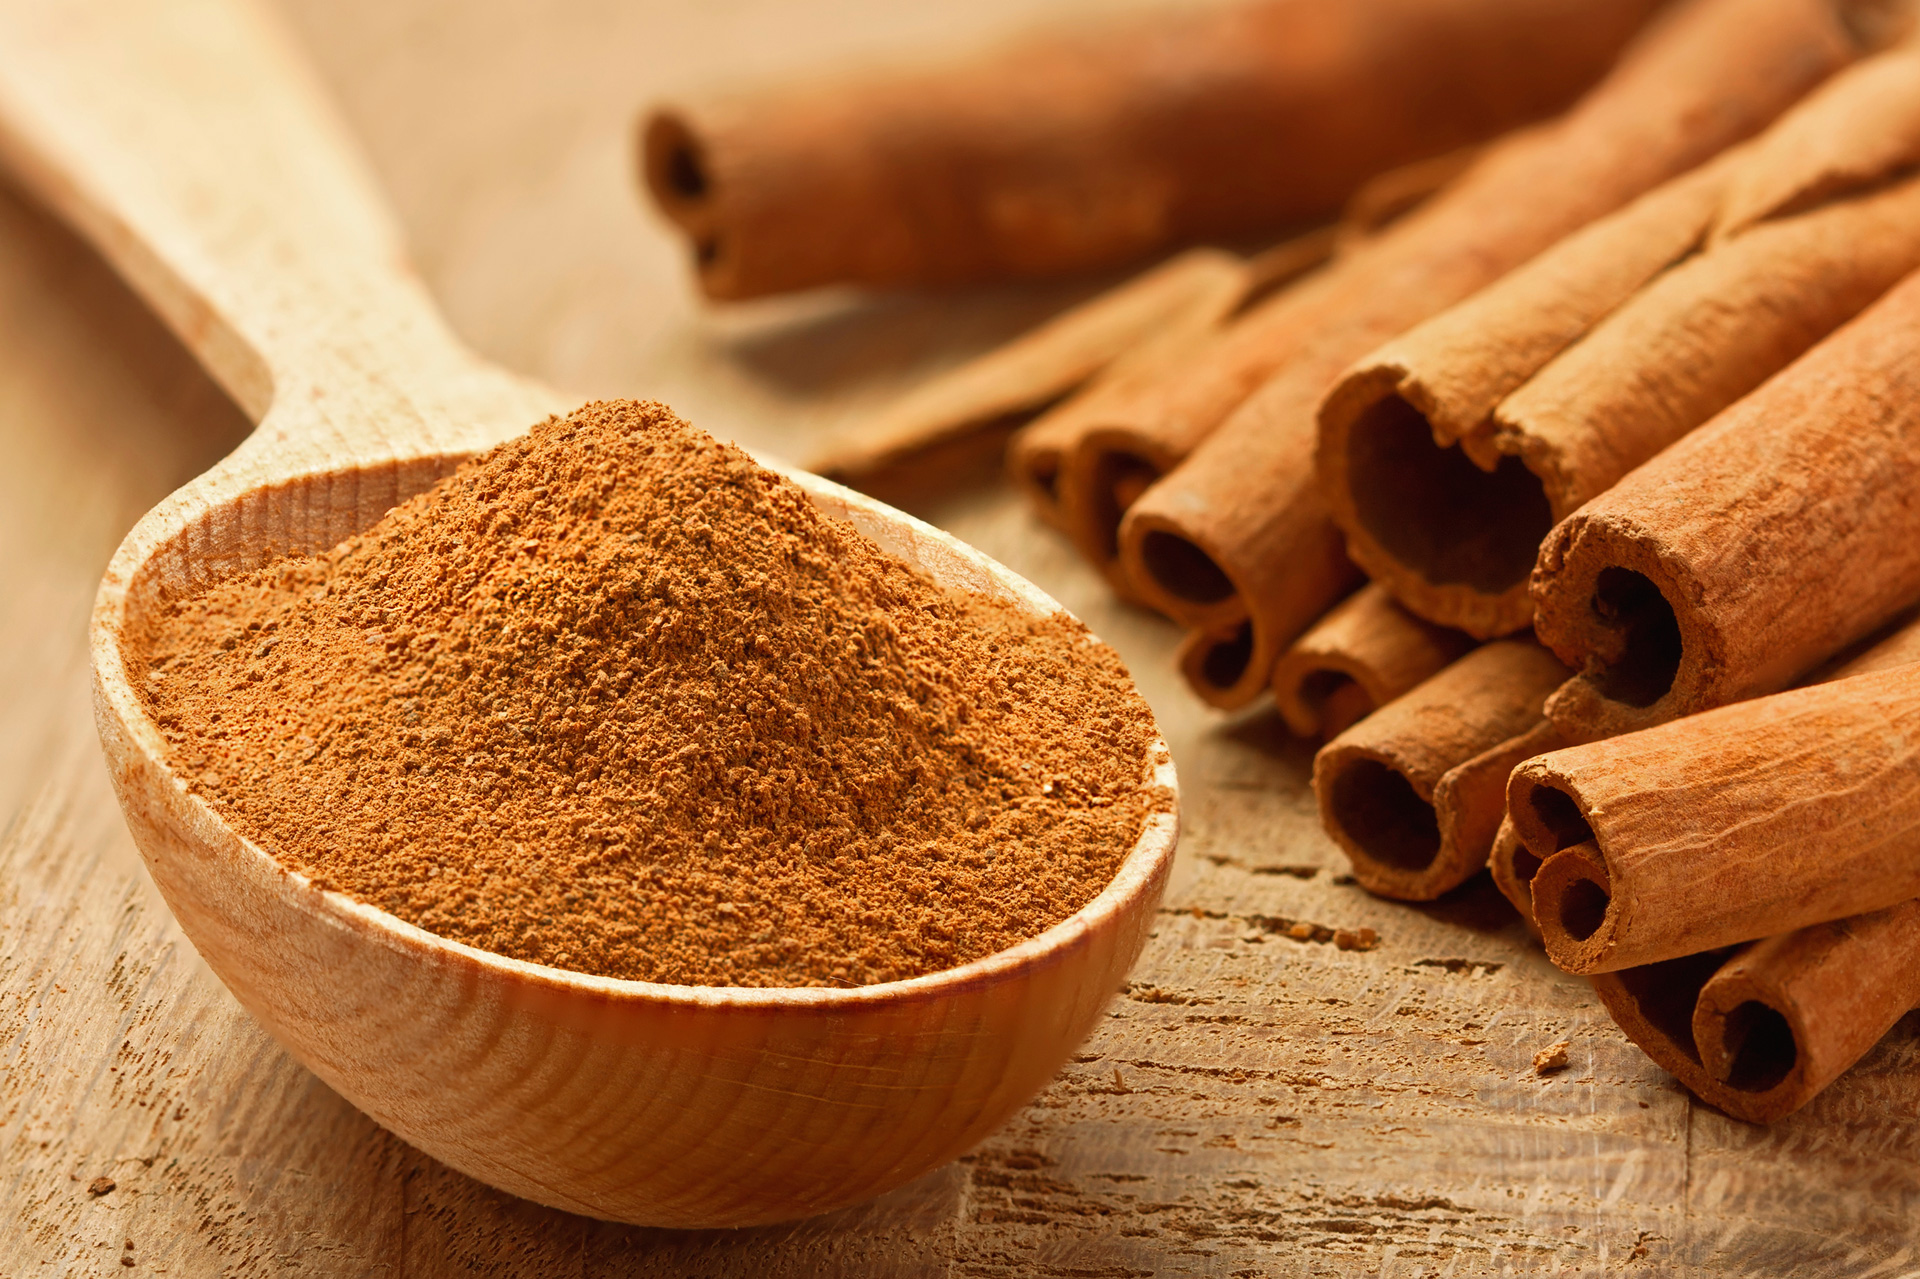 Spices are high in antioxidants